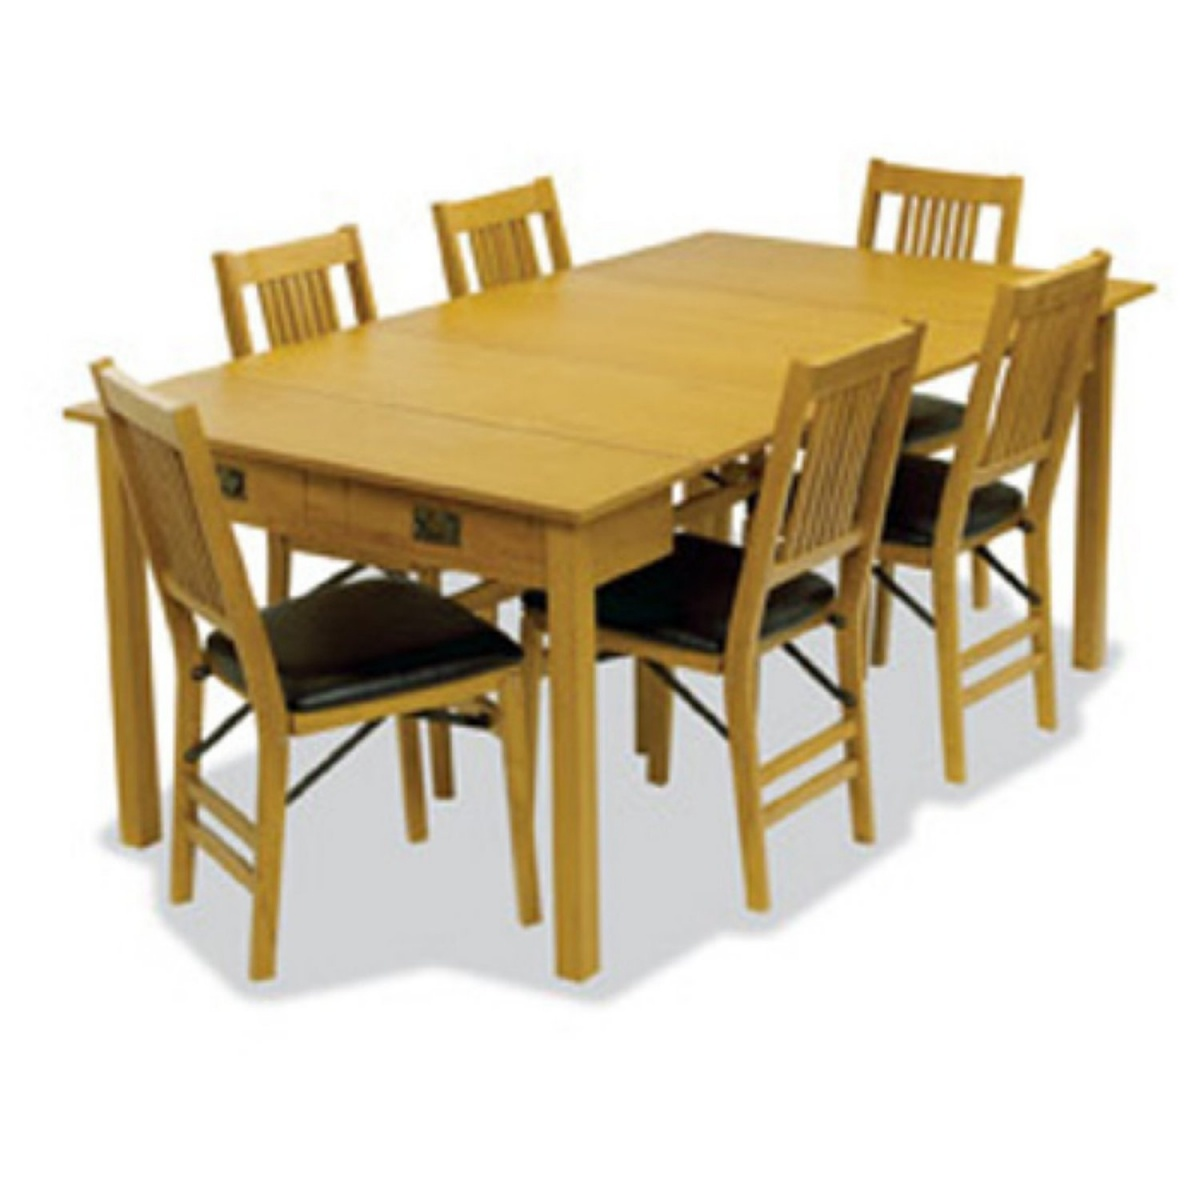 Folding Dining Room Table Space Saver Dining Table Small Space Large And Beautiful Photos Photo To